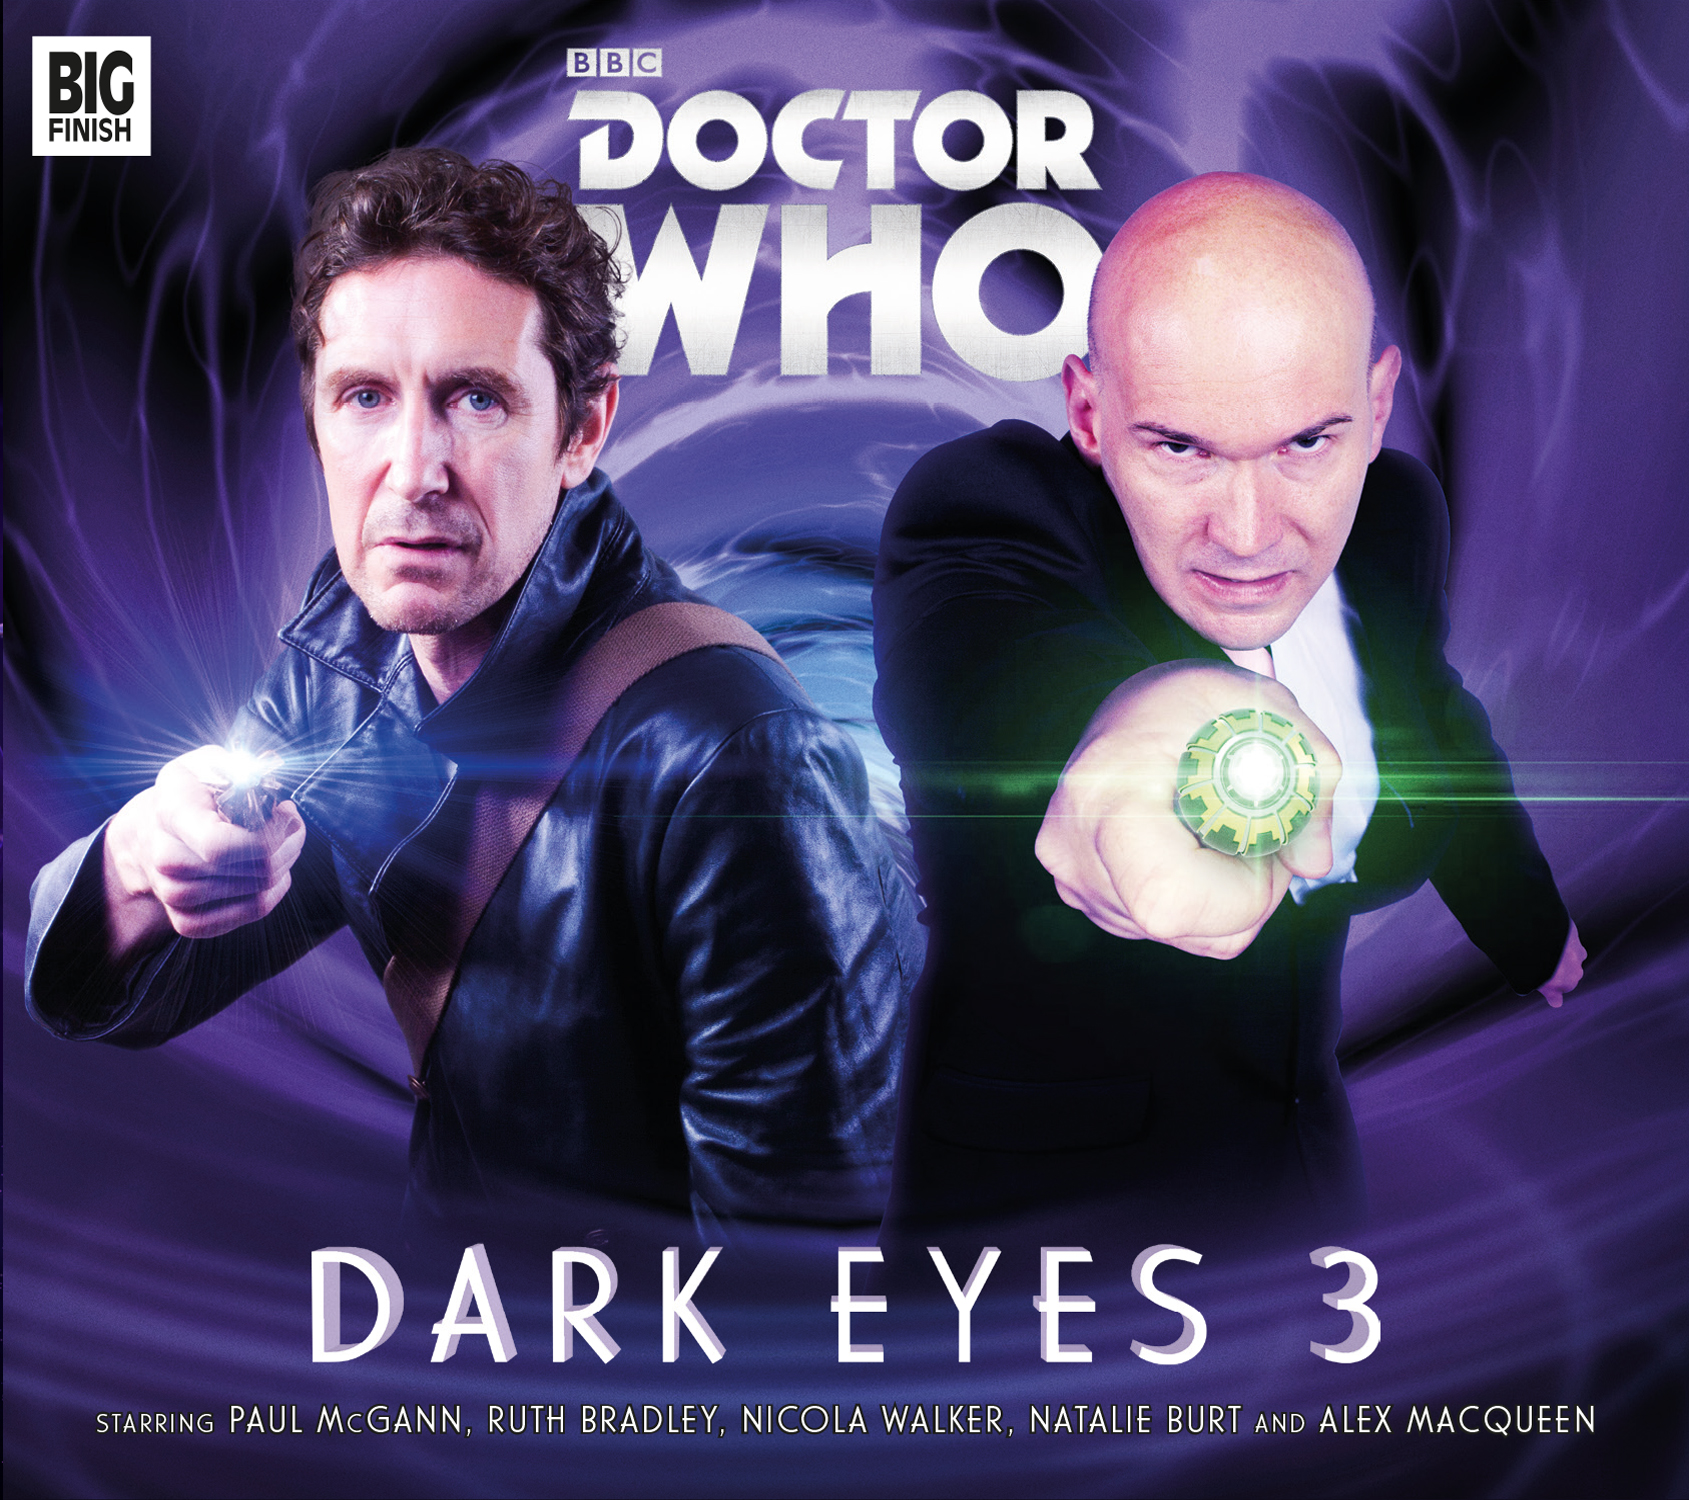 Dark Eyes 3 (Credit: Big Finish)